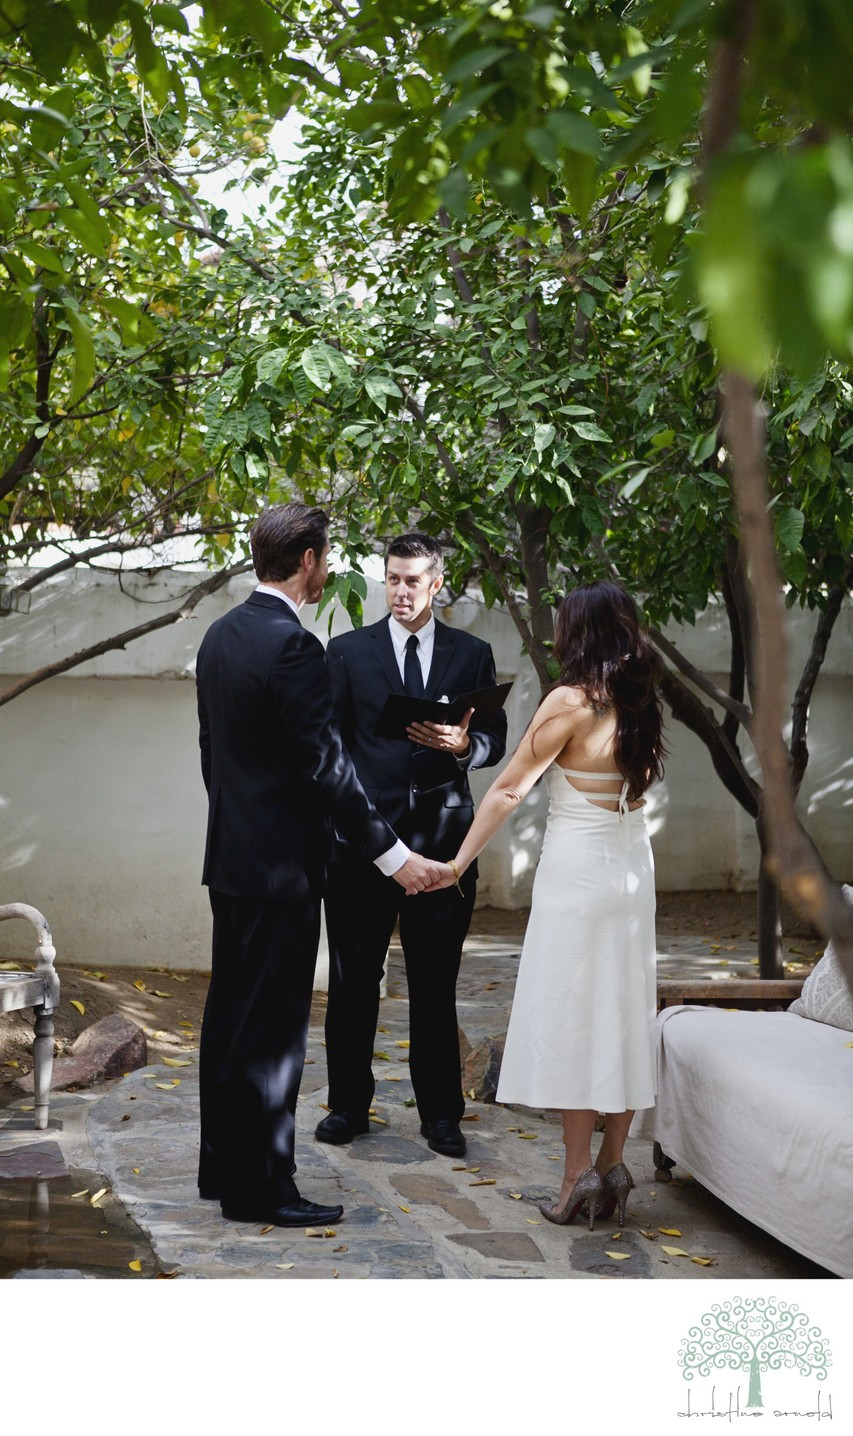 Palm Springs Small Wedding and Elopement Photos